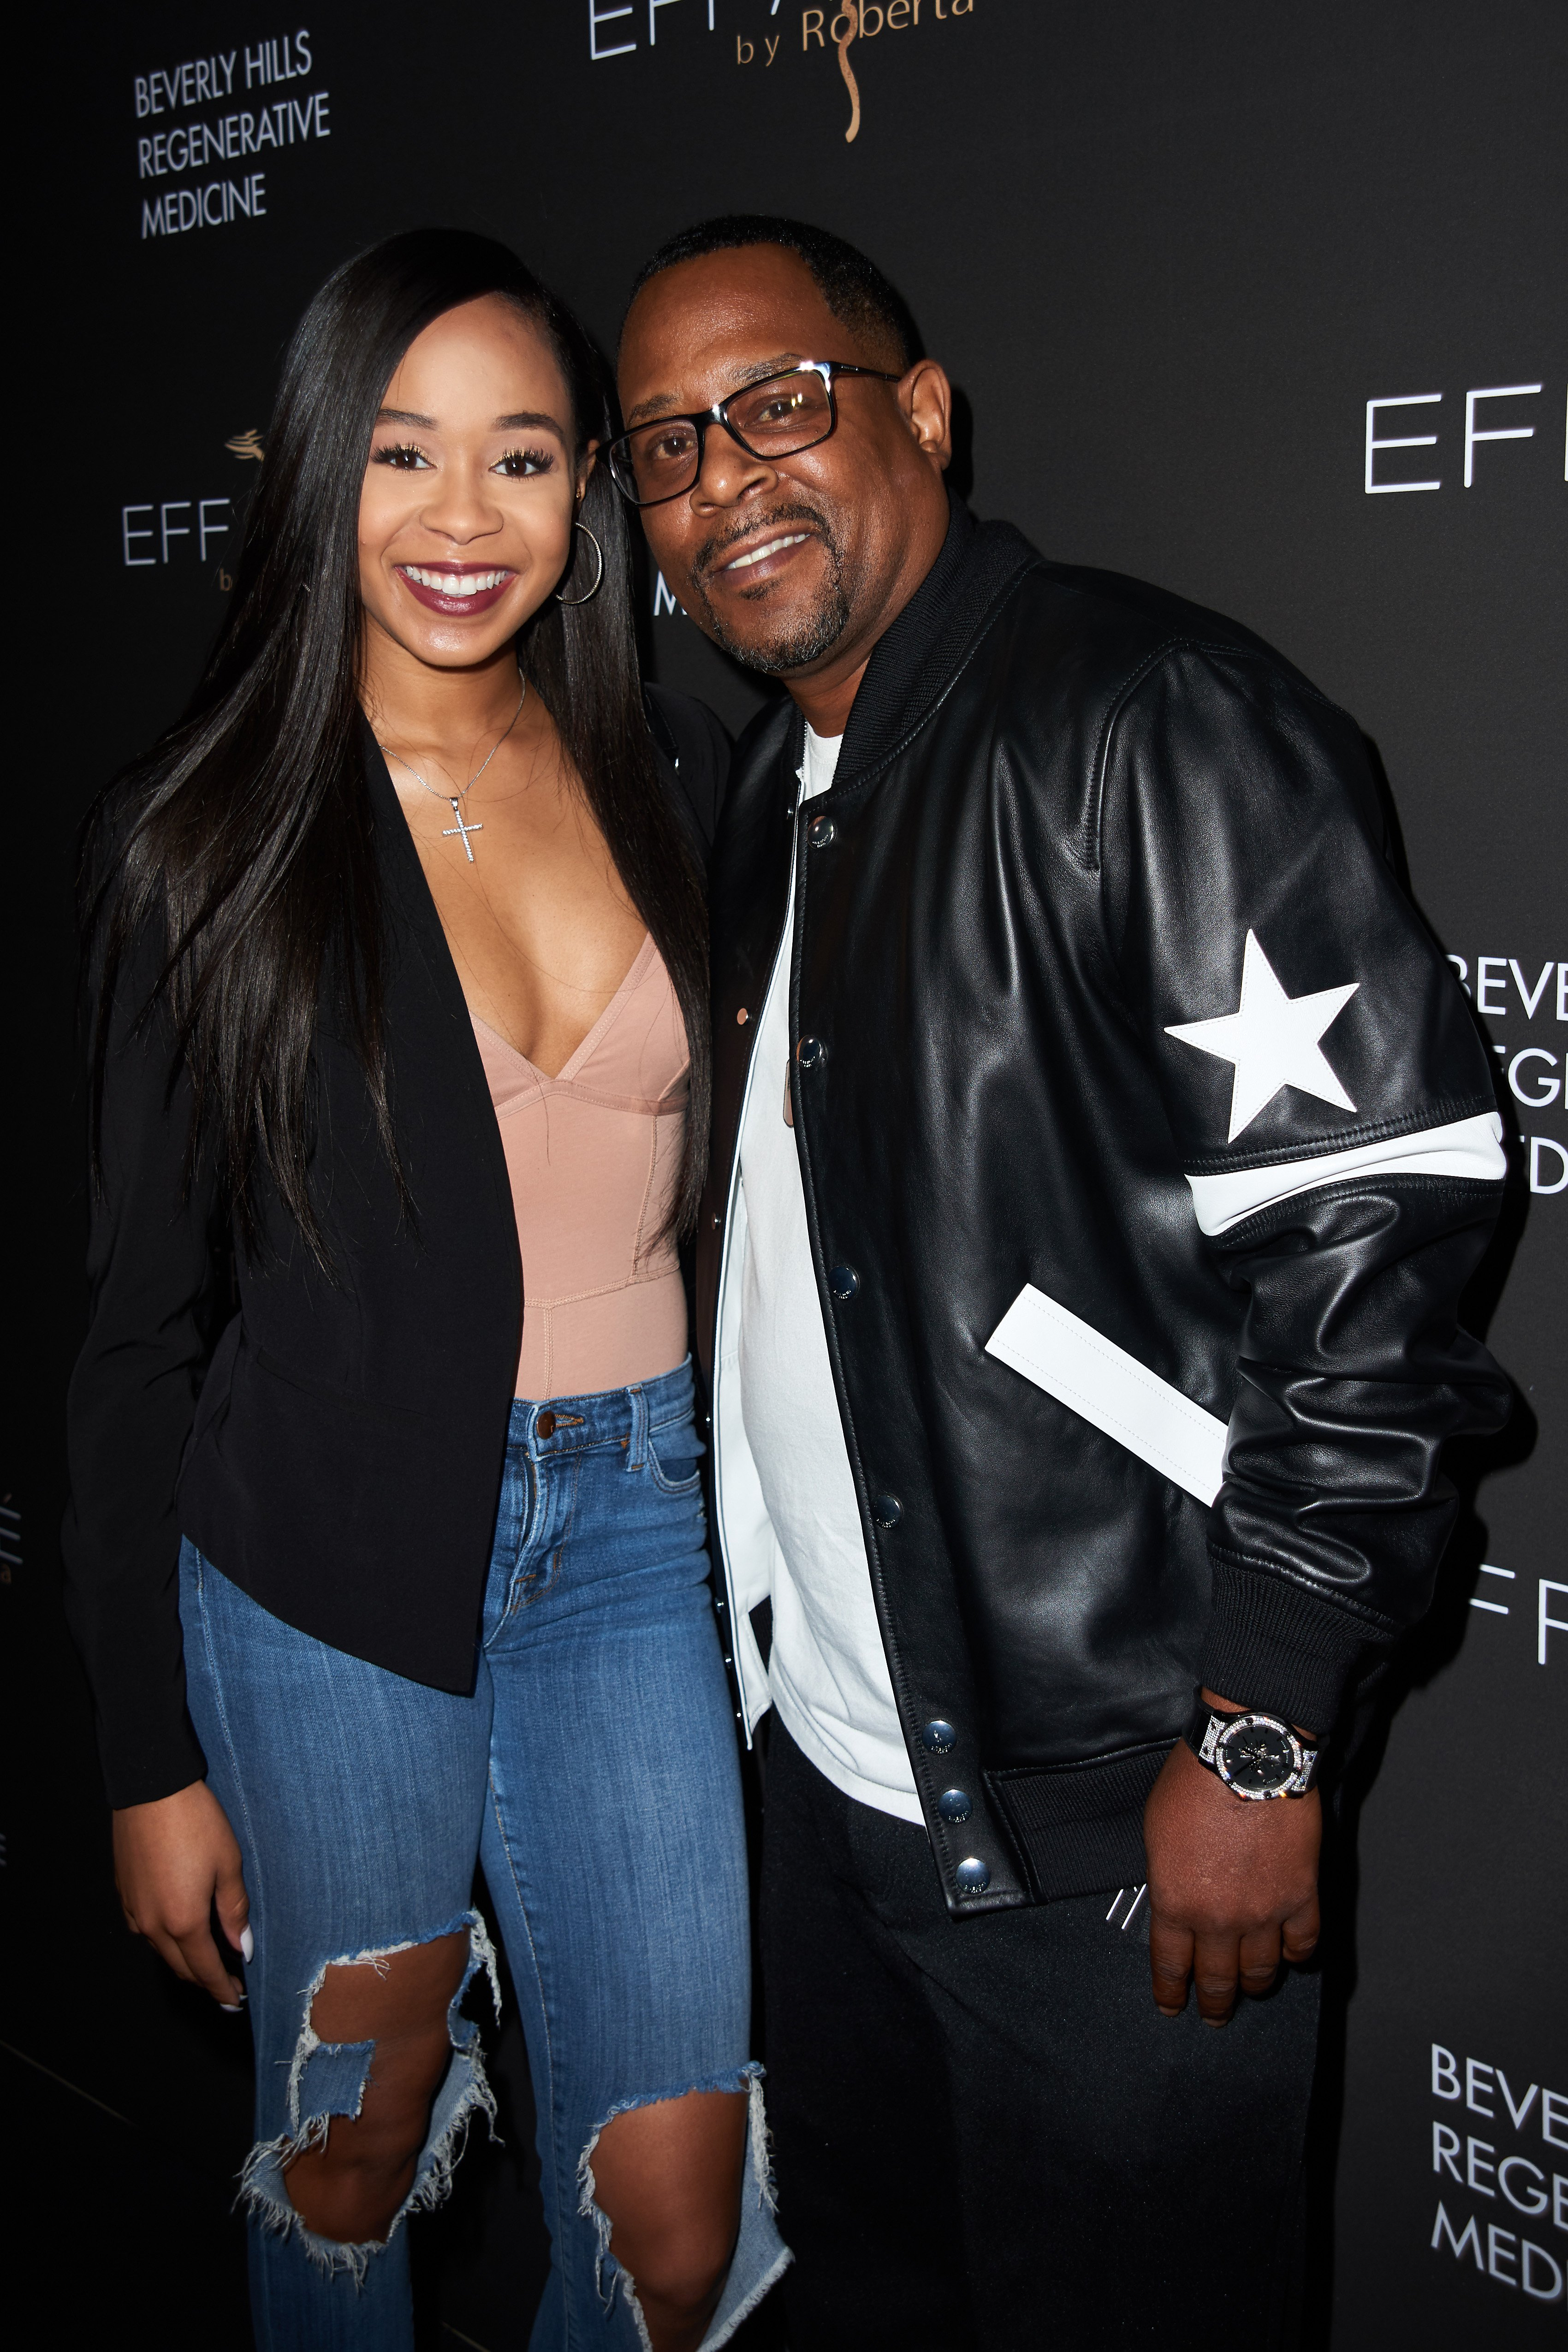 Martin Lawrence and Jasmin Lawrence pose at the grand opening of Roberta Moradfar's Efface Aesthetics on December 12, 2019 in Santa Monica, California.   Source: Getty Images